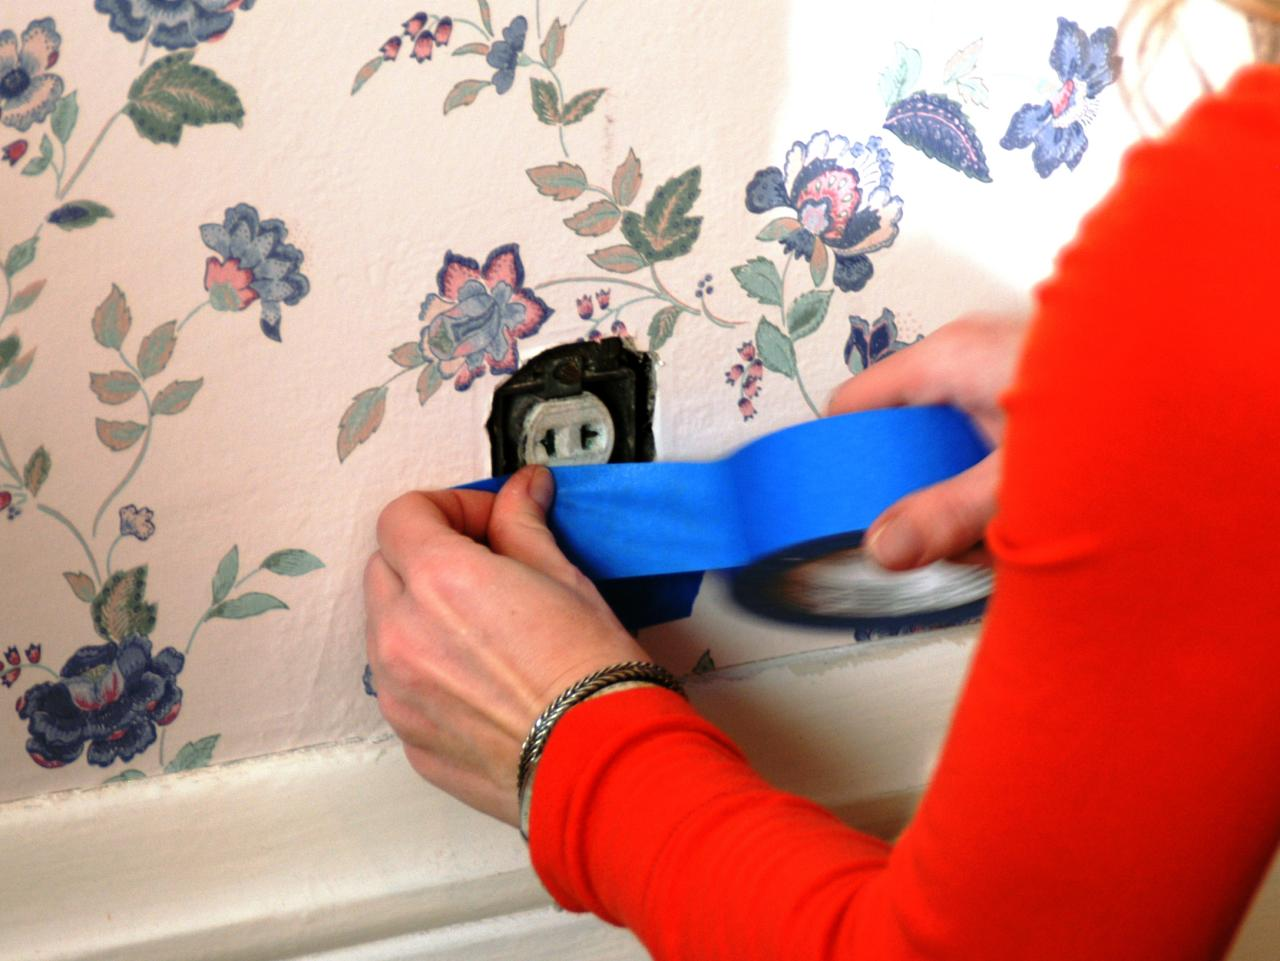 How to remove wallpaper paste from sheetrock - Step 1